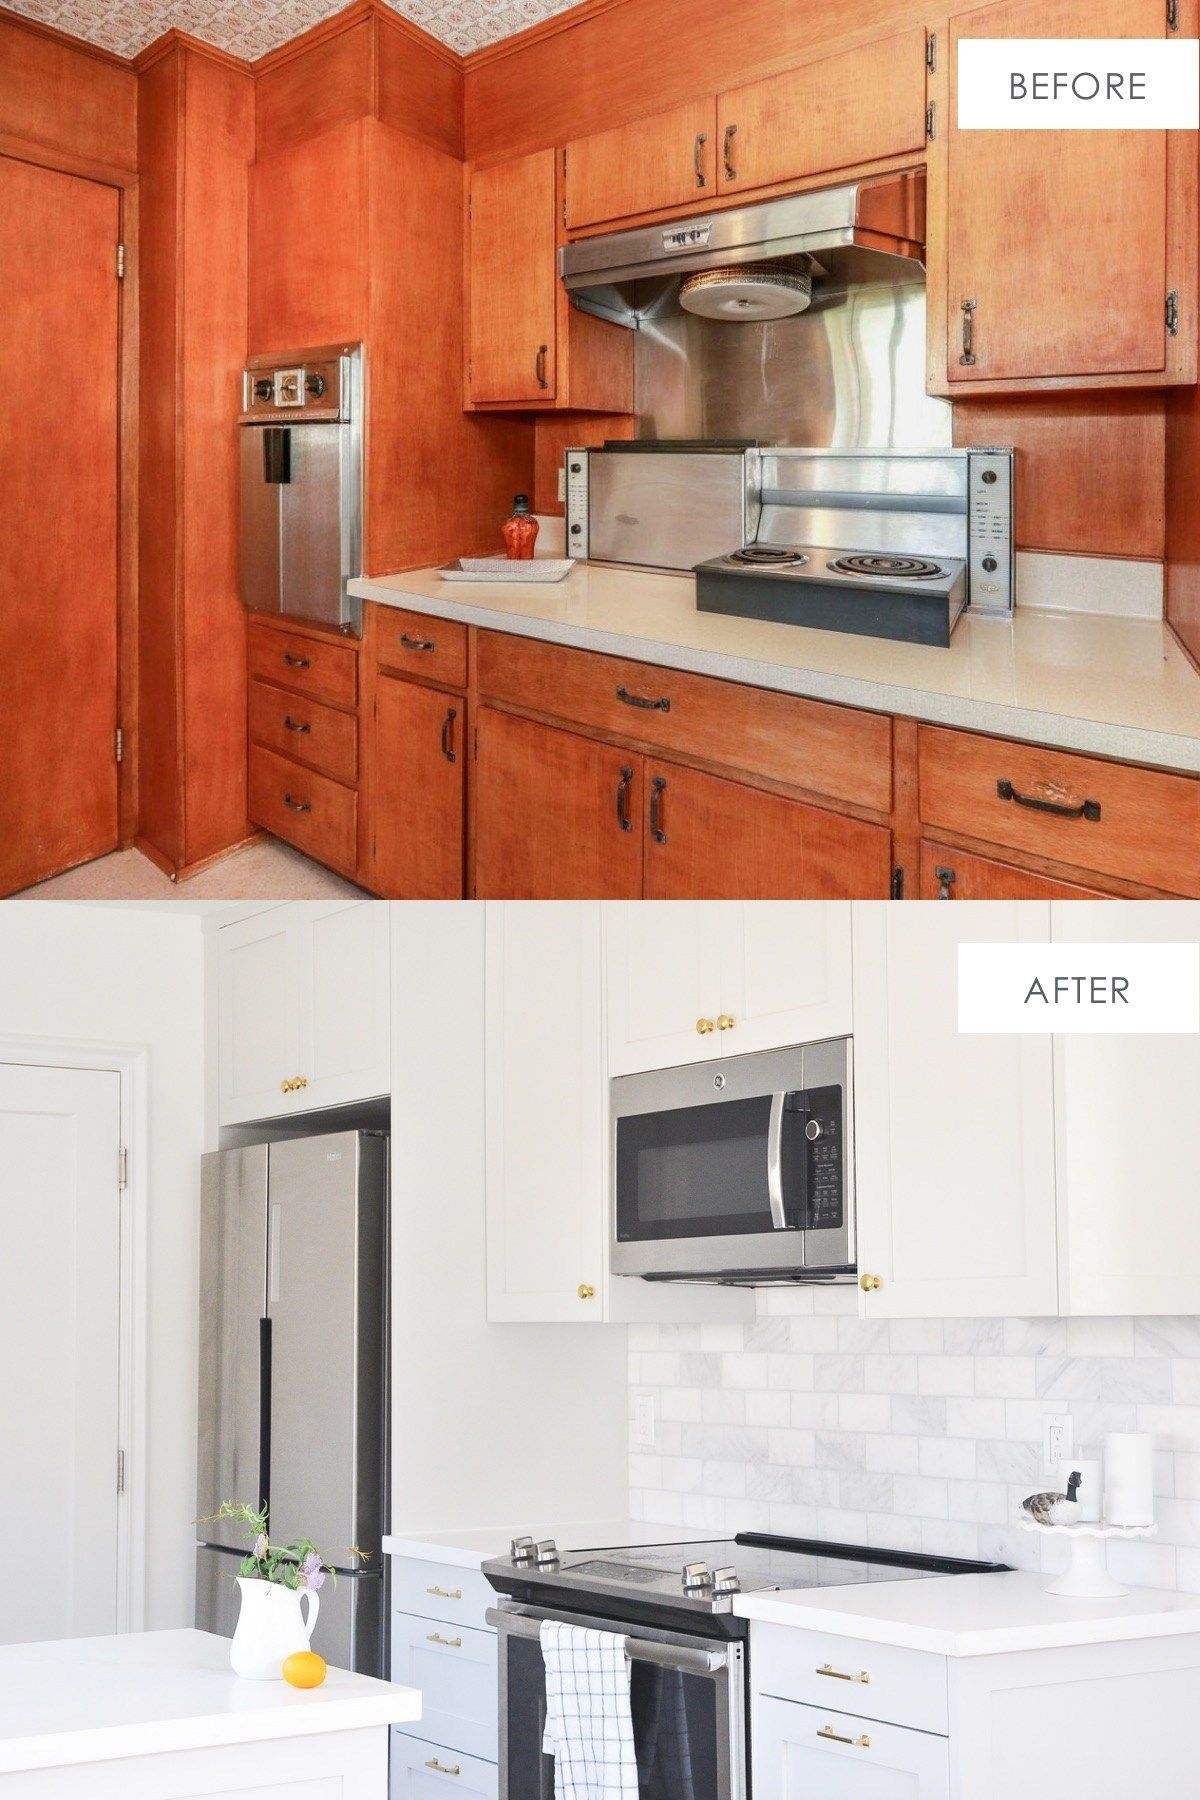 Ikea Kitchen Cabinets Review Honest Review After 2 Years Hydrangea Treehouse Ikea Kitchen Cabinets Kitchen Transformation Ikea Kitchen Remodel